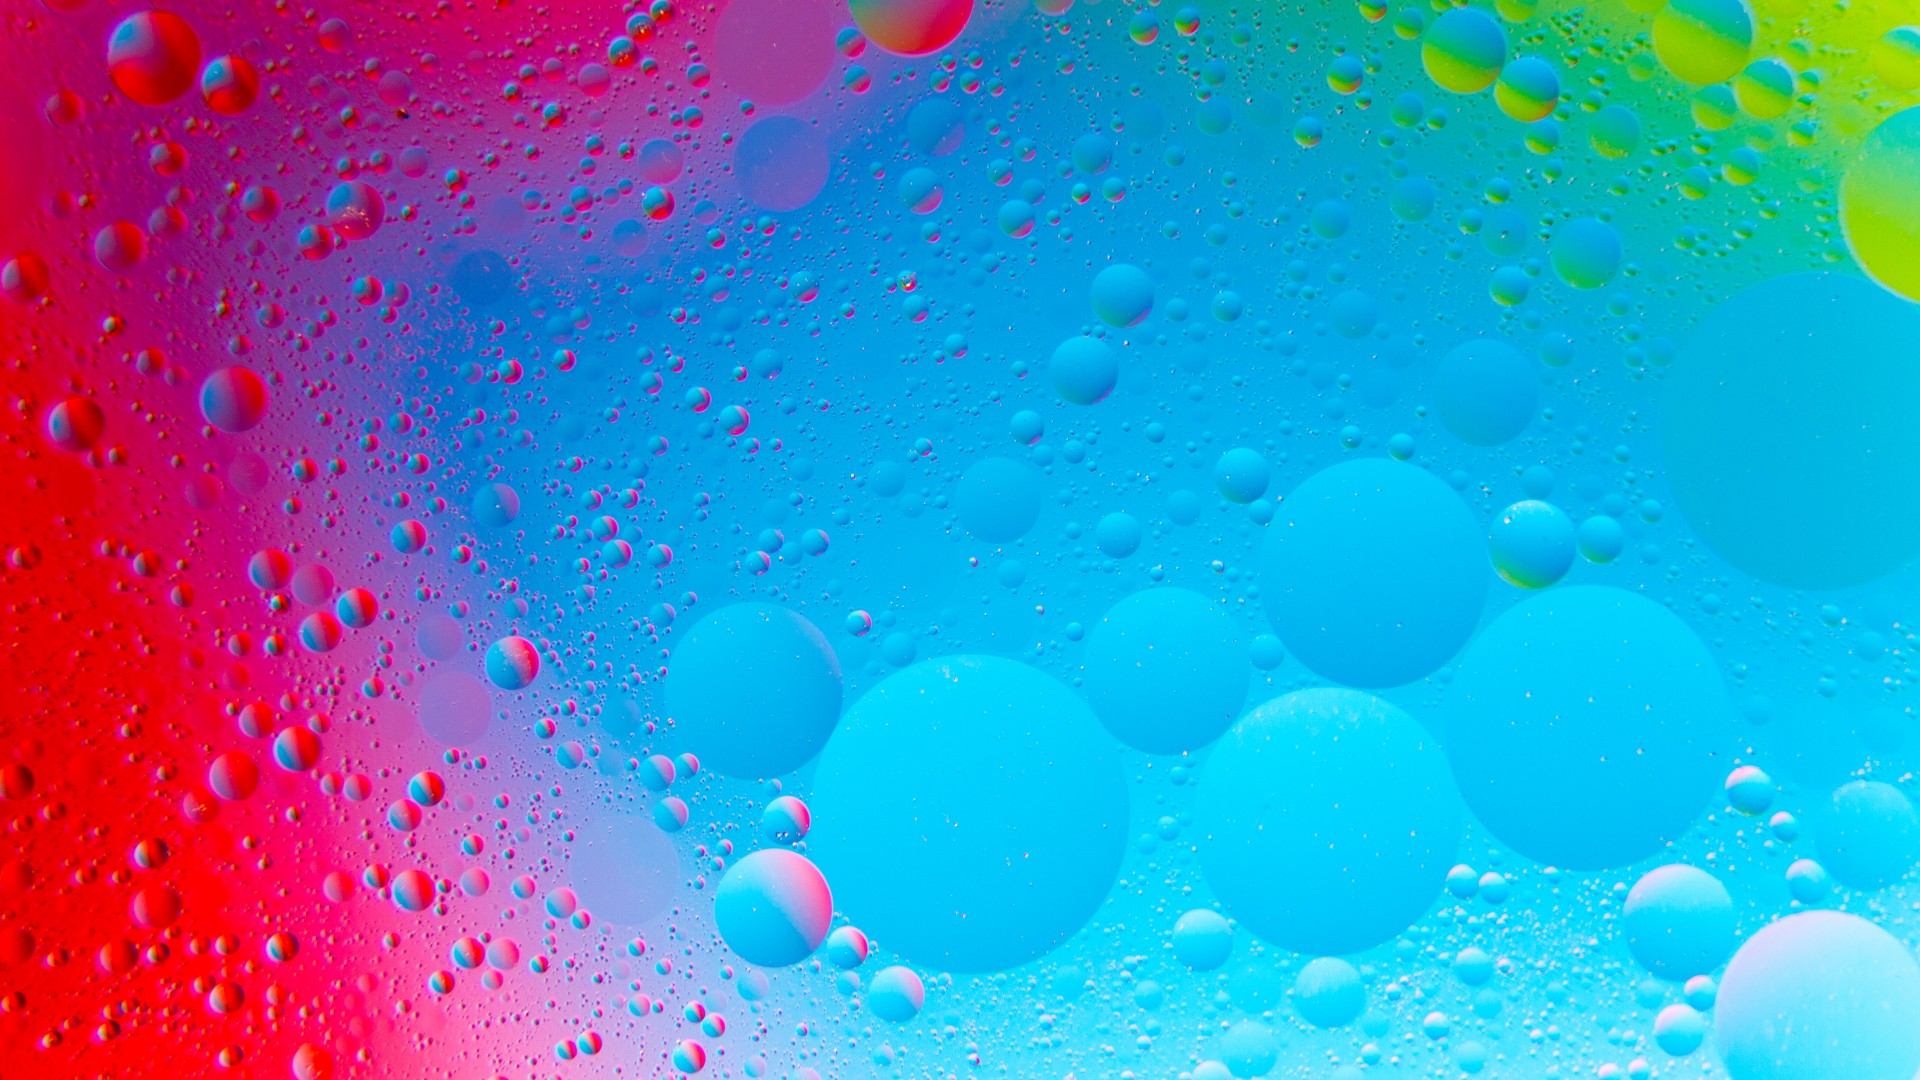 Inspirational Wallpaper Iphone 6 Vibrant Abstract Bubbles 4k Wallpapers Hd Wallpapers